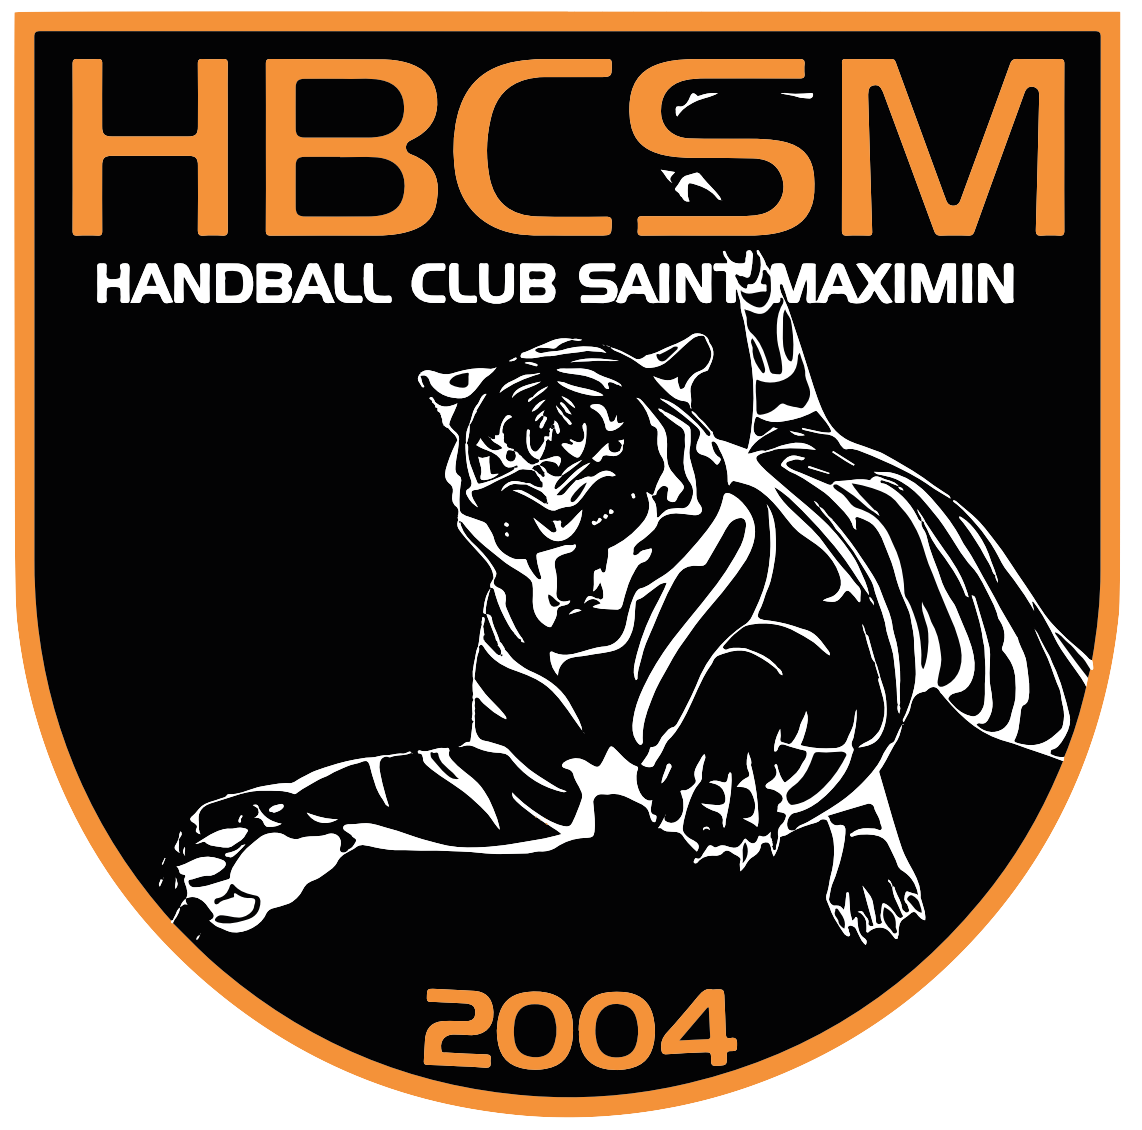 HANDBALL CLUB SAINT-MAXIMIN